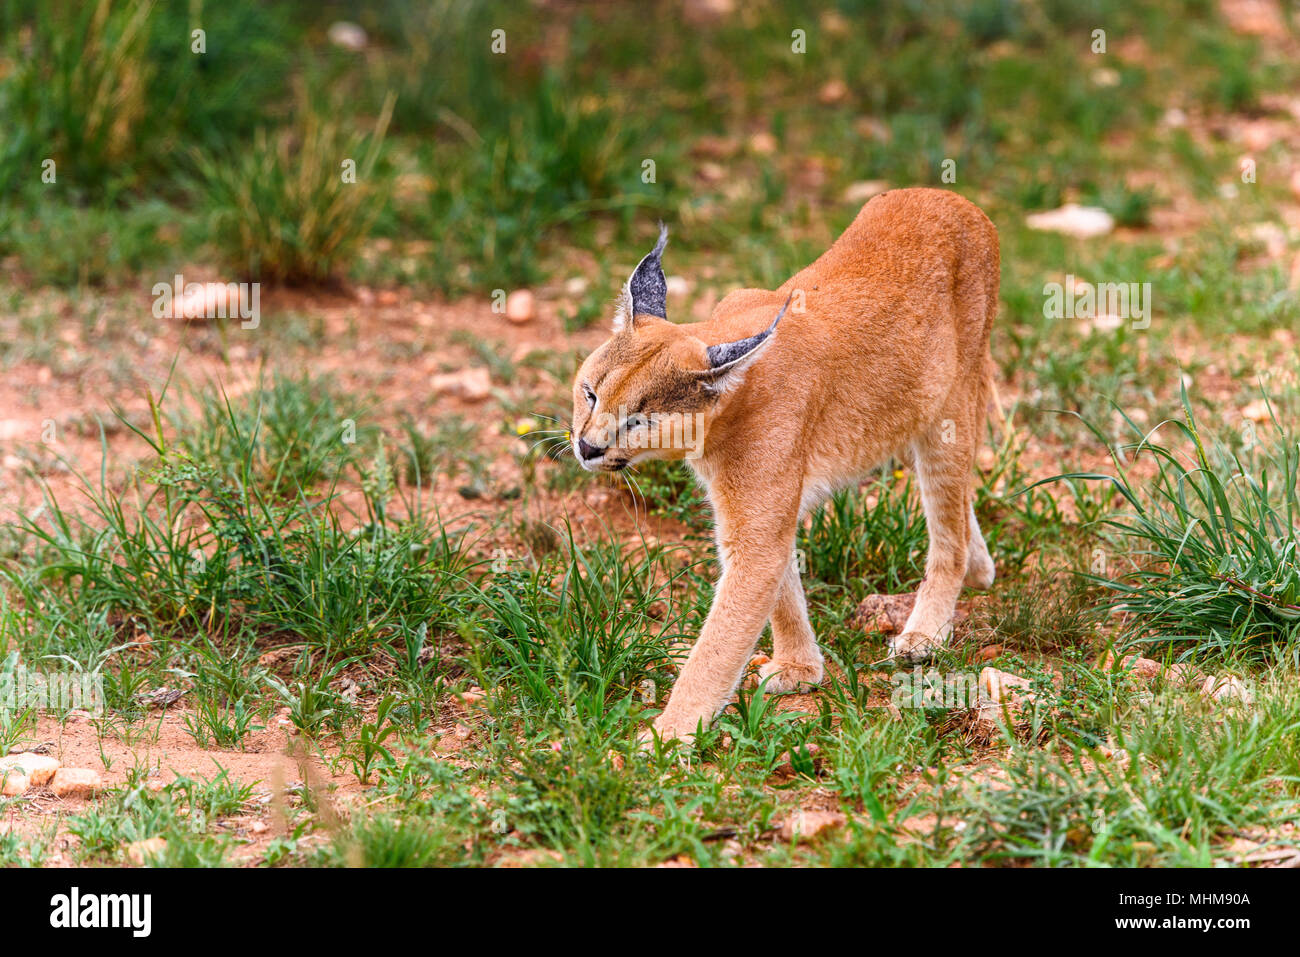 Caracal close view at the Naankuse Wildlife Sanctuary, Namibia, Africa - Stock Image